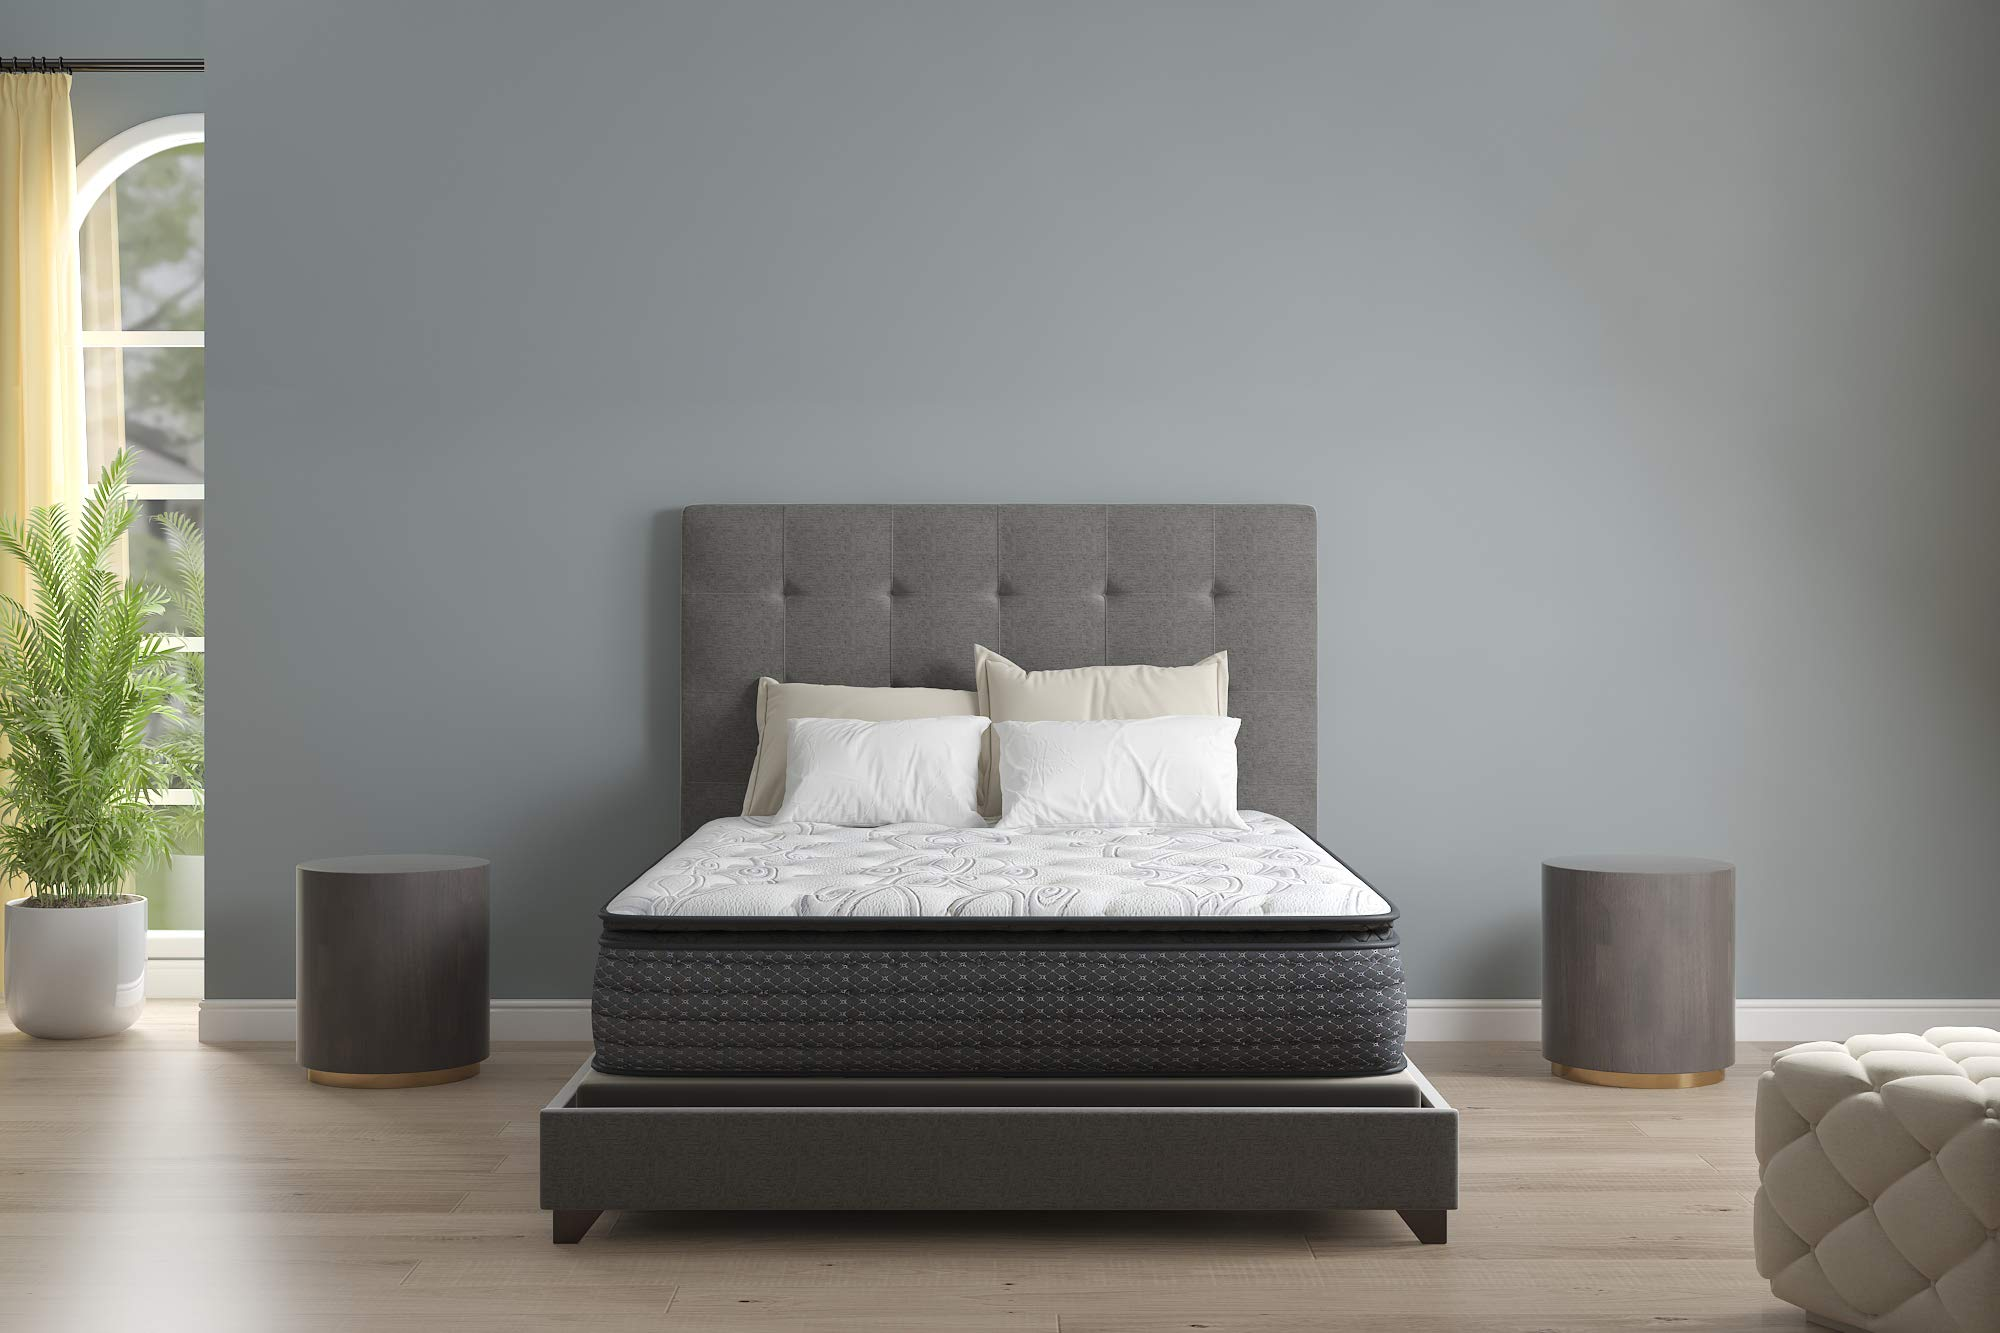 Signature Design by Ashley Limited Edition Pillowtop Queen Mattress, White by Signature Design by Ashley